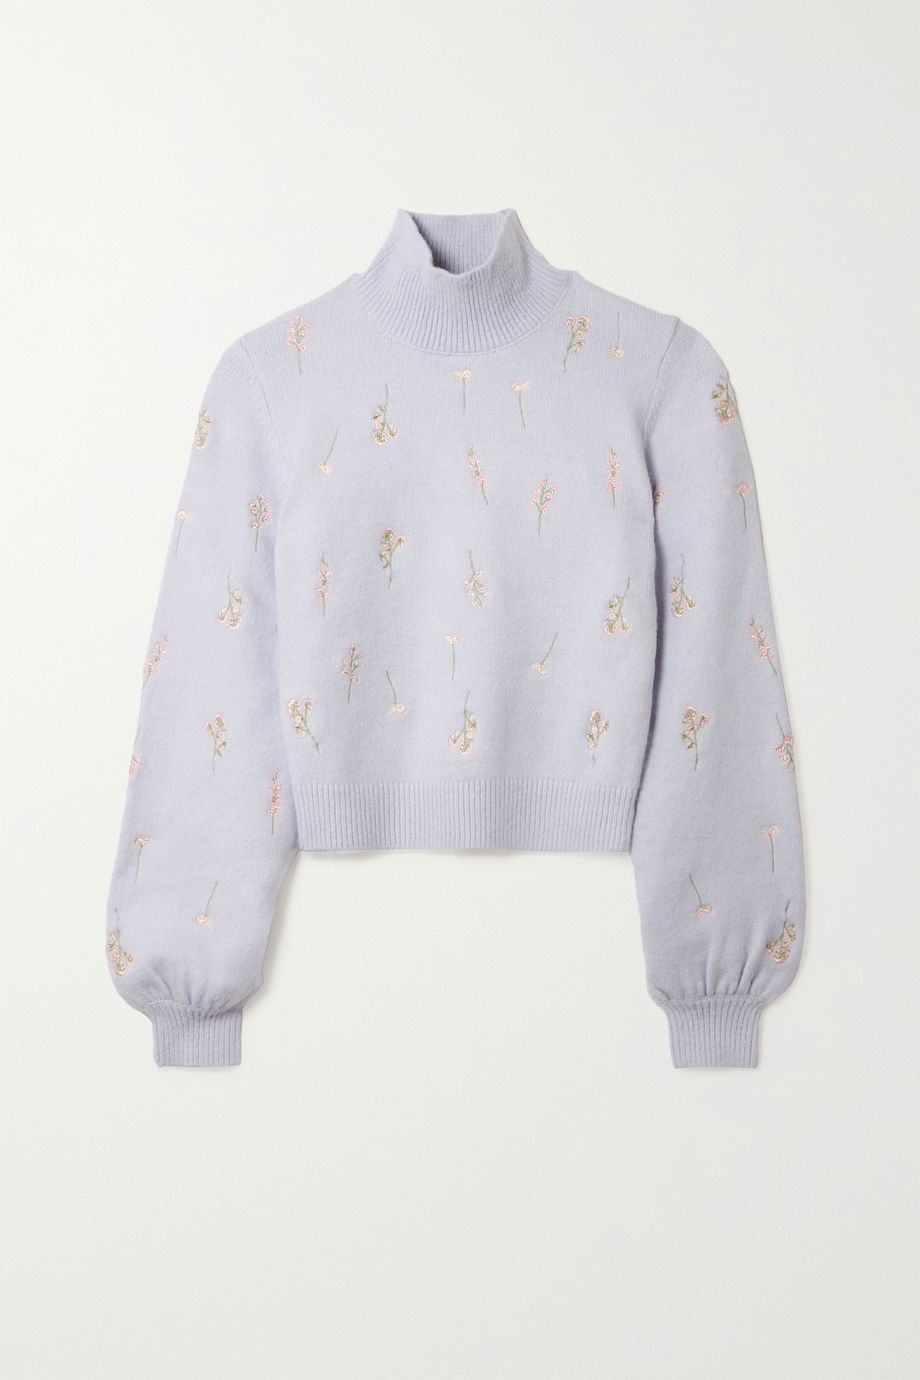 TVF Pumpkin embroidered knitted sweater